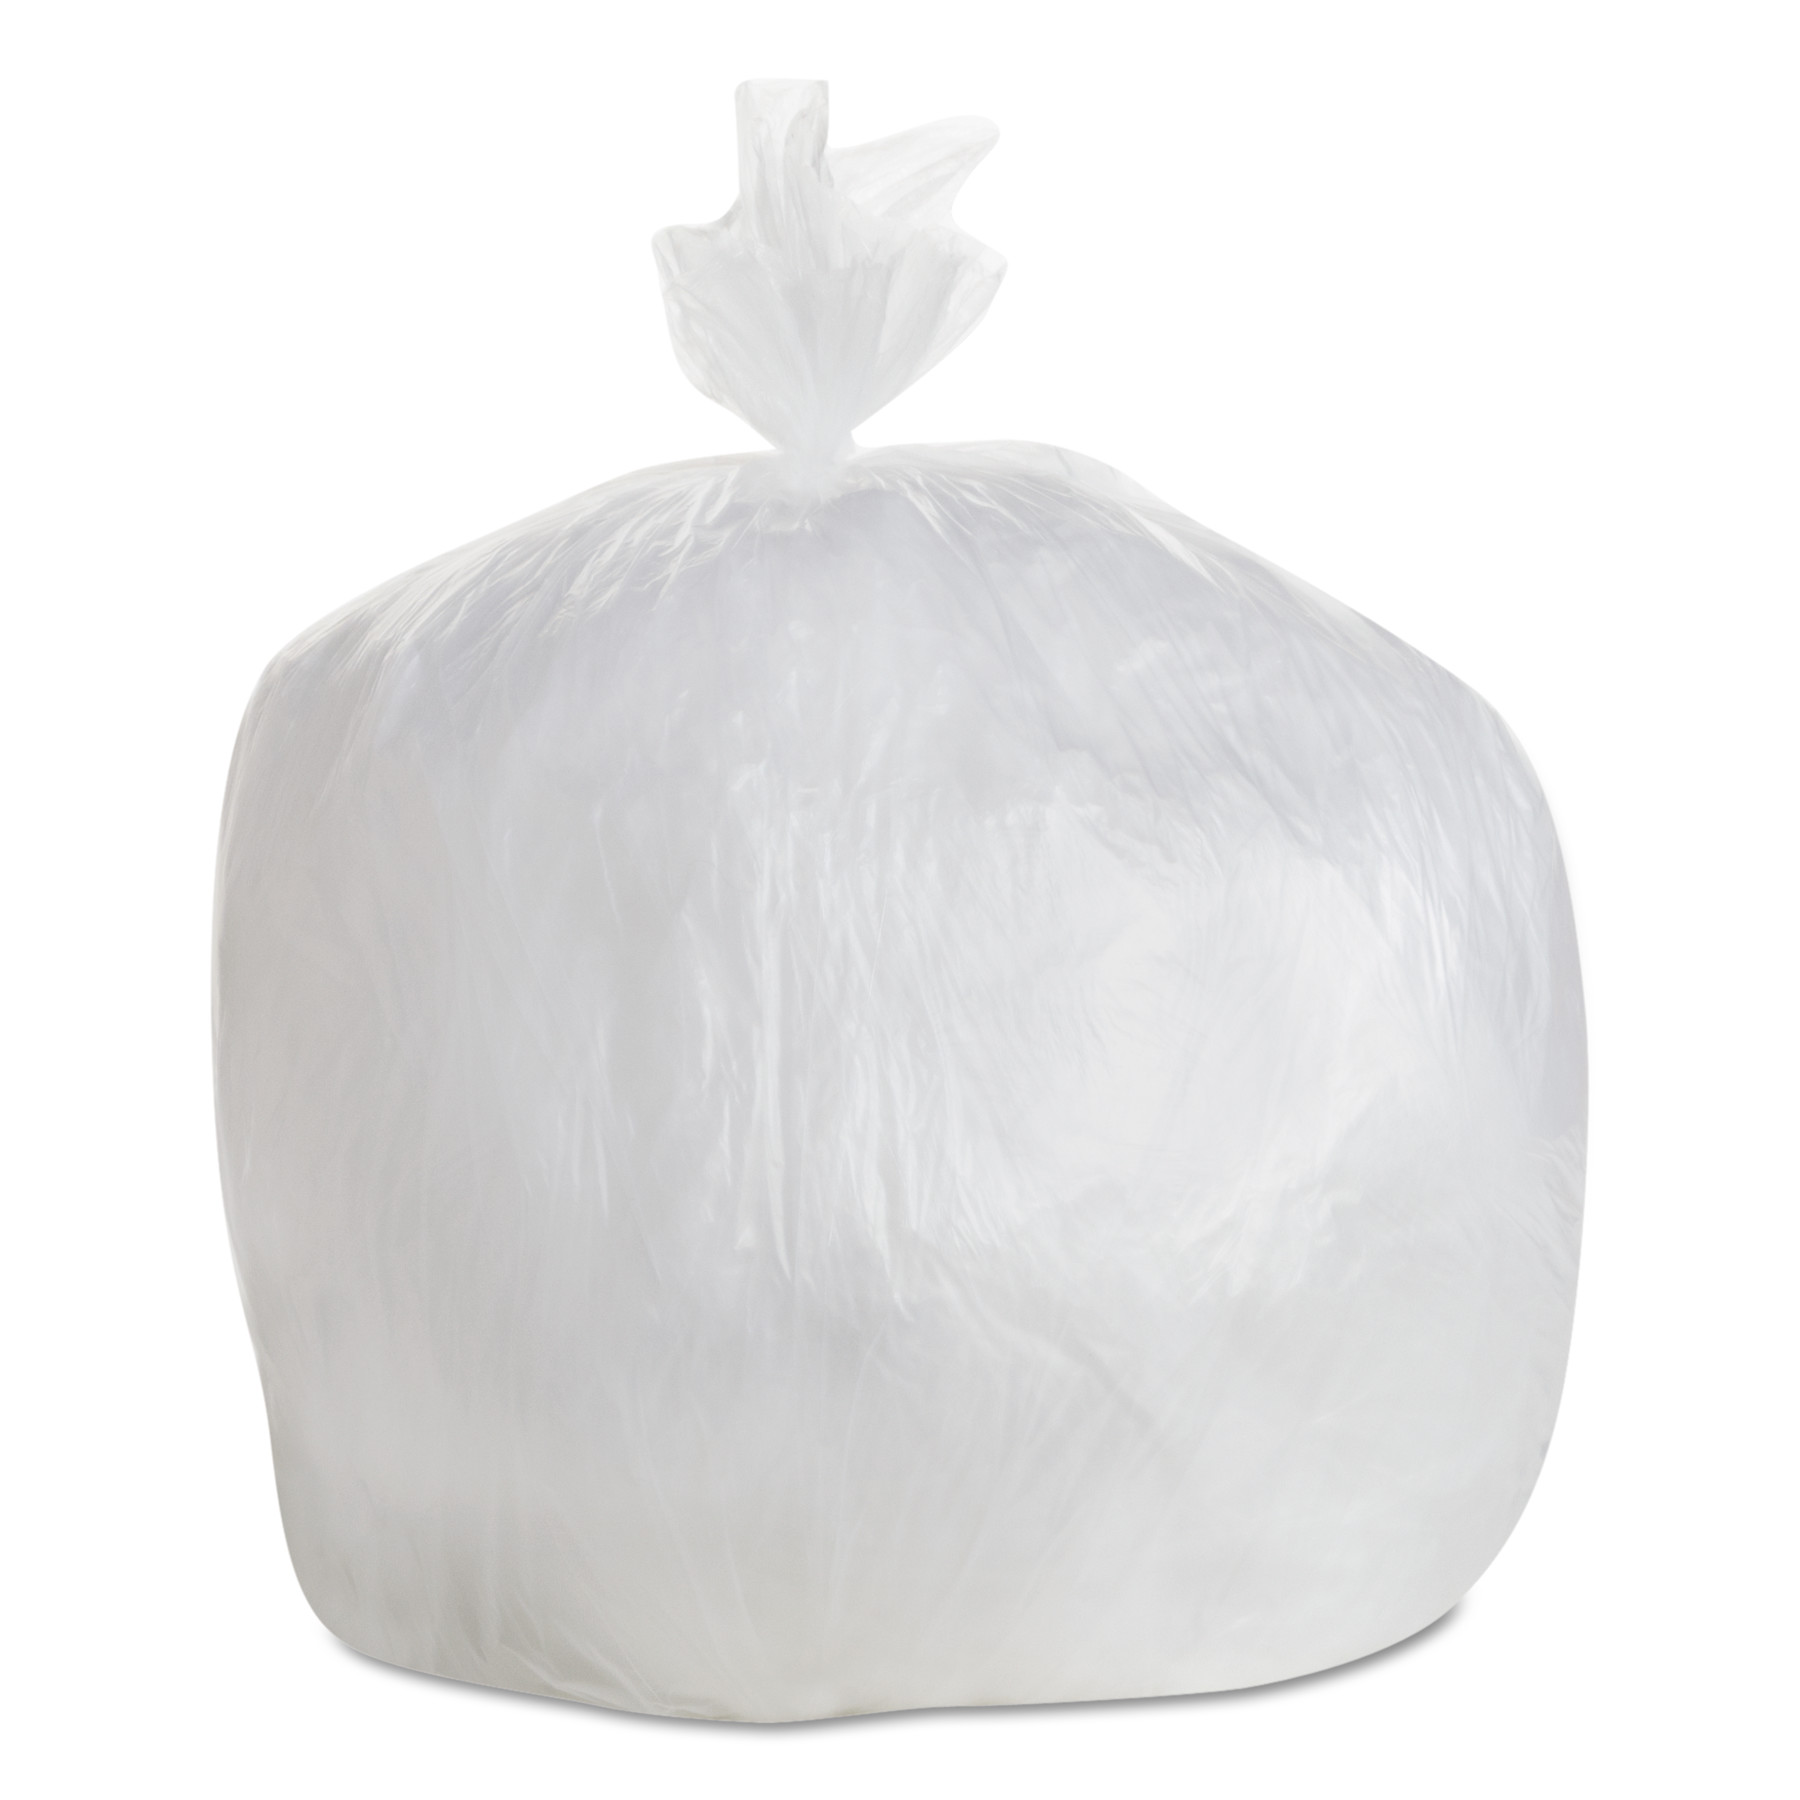 GEN High-Density Trash Bag, 30x36, 20-30 gal, 8 Mic, Natural, 25 Bag/RL, 20 RL/CT